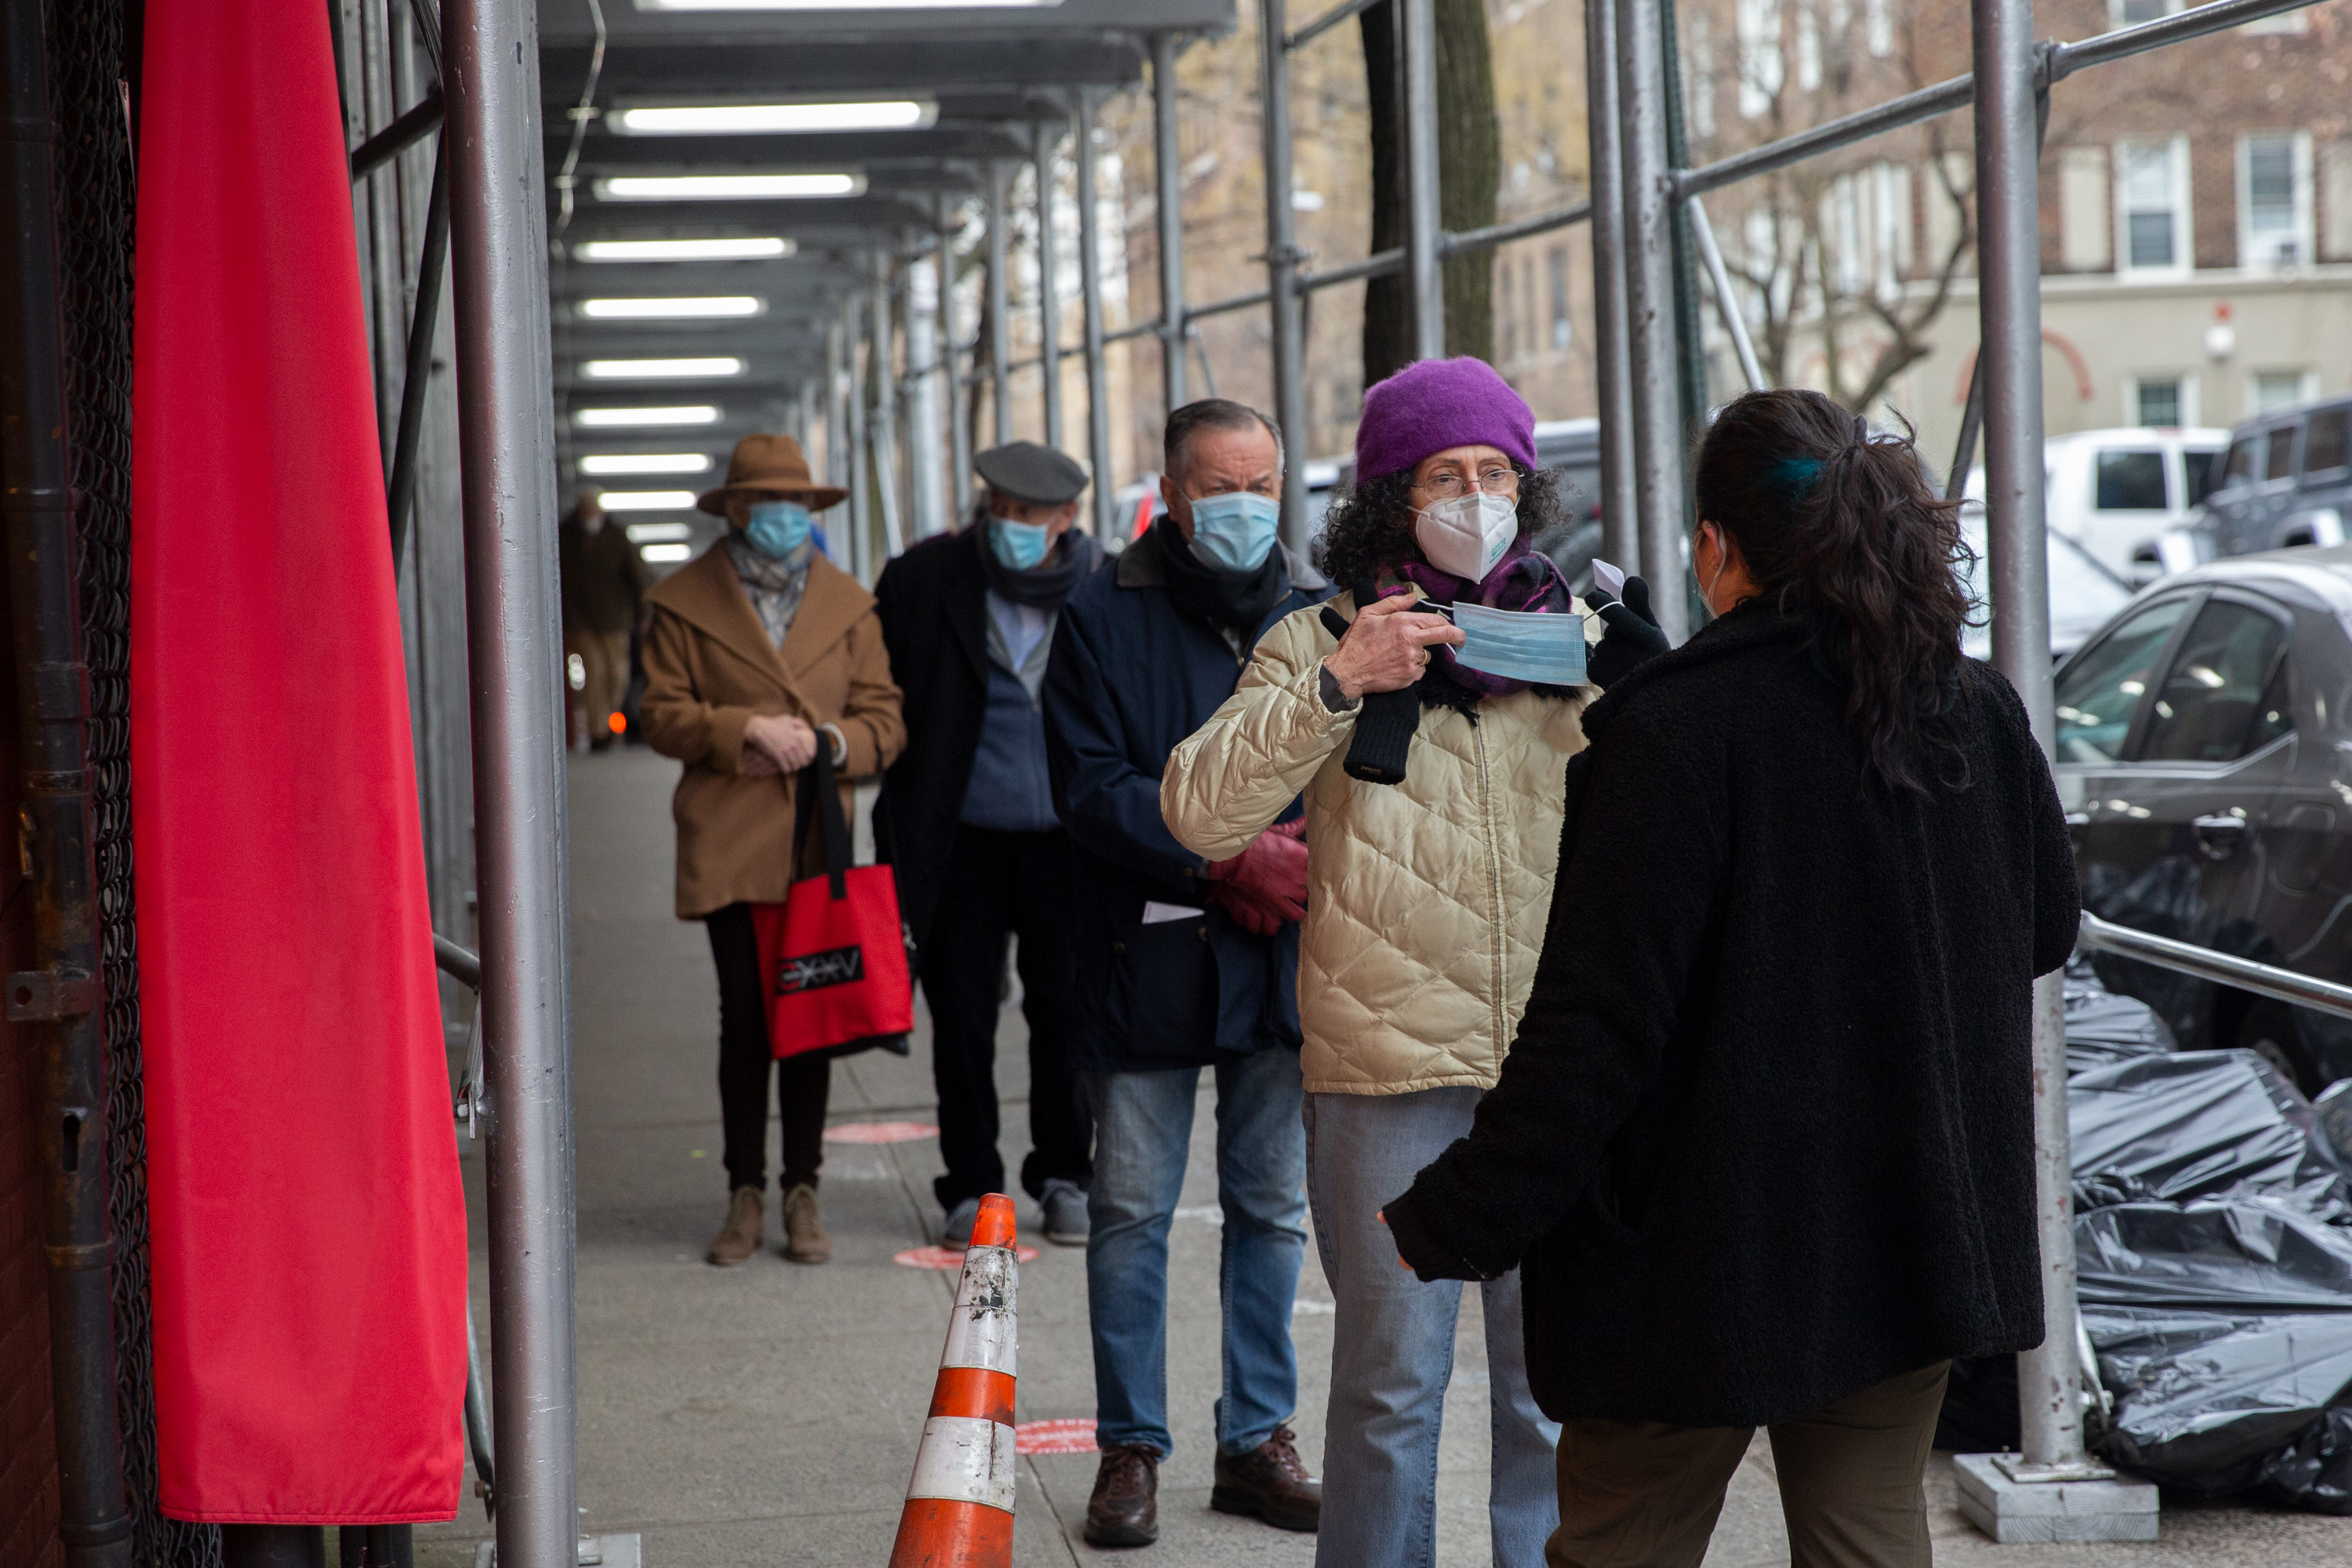 A health care worker speaks with people waiting to get their coronavirus vaccine shot at the Washington Heights Armory, Jan. 26, 2021.